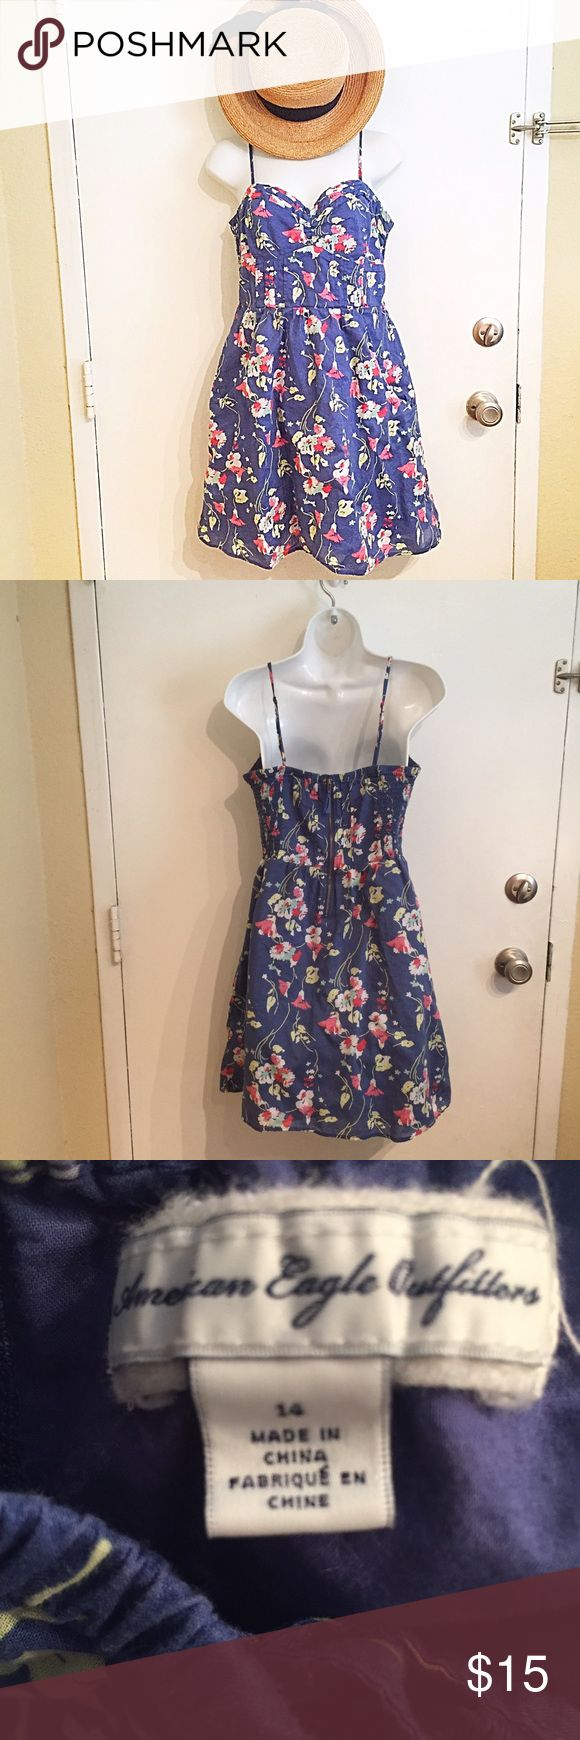 American Eagle Floral Dress with Pockets American Eagle Outfitters Floral dress with pockets. Zips up the back. Sweetheart neckline. Size 14. #aeo #americaneagle #americaneagleoutfitters #floral #dress #pockets #sweetheart #punkydoodle  No modeling Smoke free home I do discount bundles American Eagle Outfitters Dresses